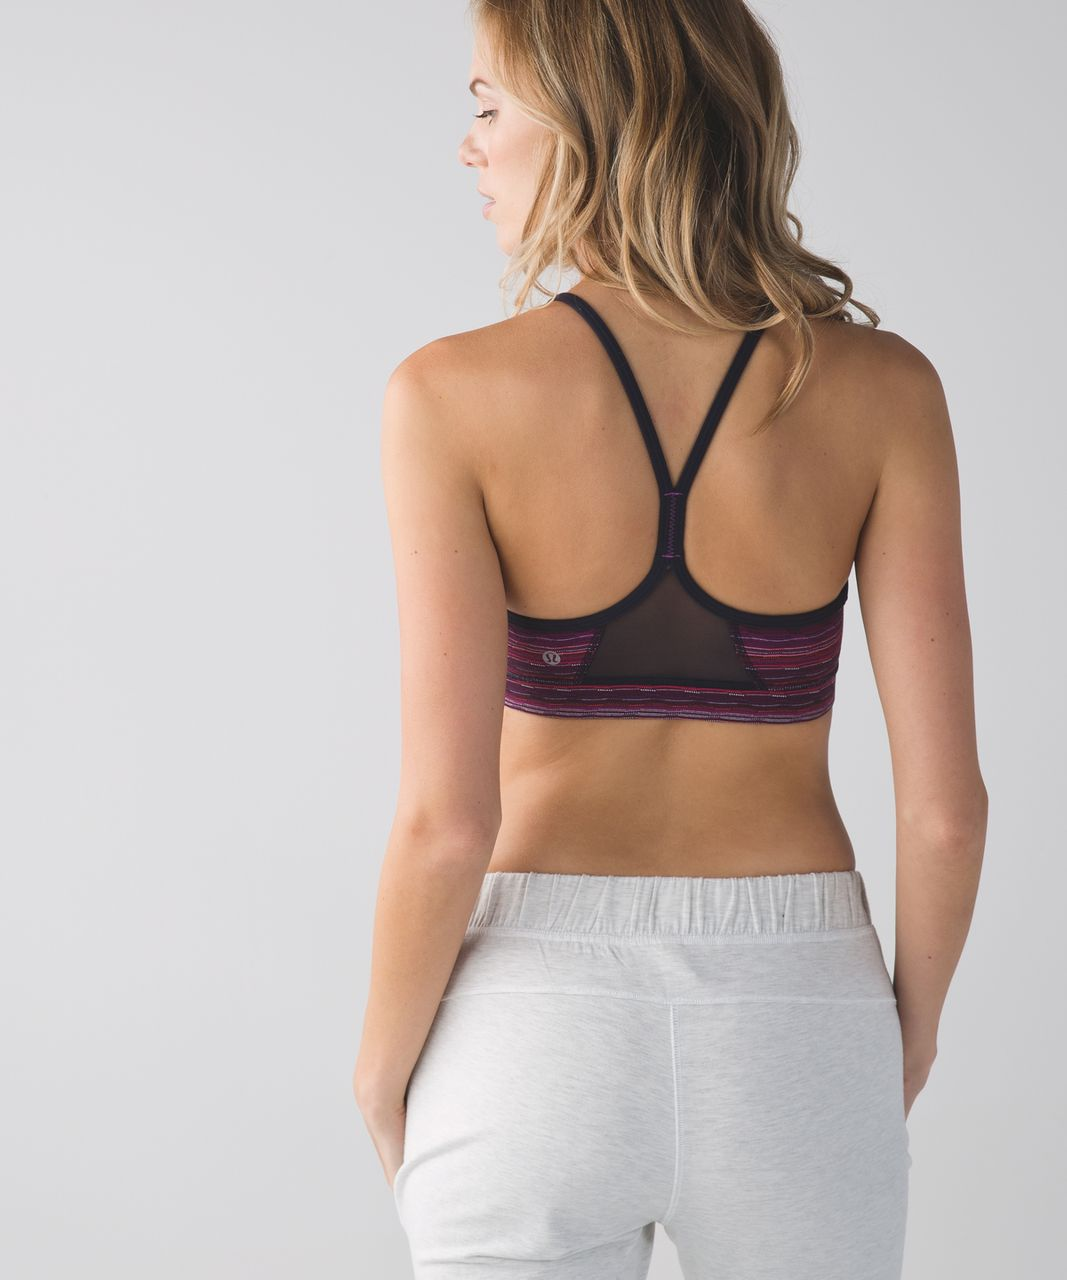 Lululemon Flow Y Bra IV - Space Dye Twist Regal Plum Alarming